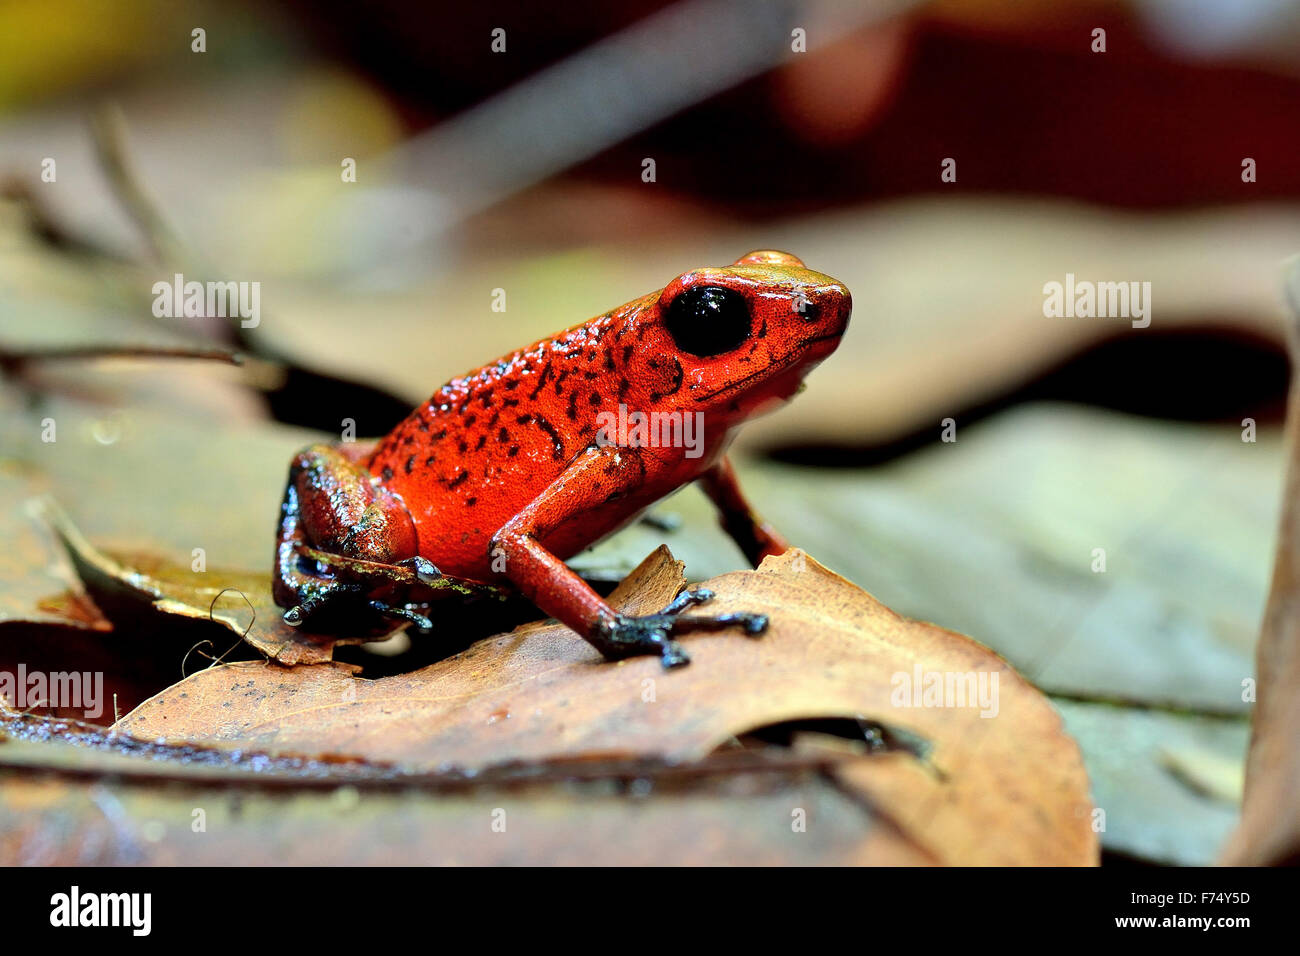 Blue Jeans Dart Frog in Costa Rica's rain forest - Stock Image